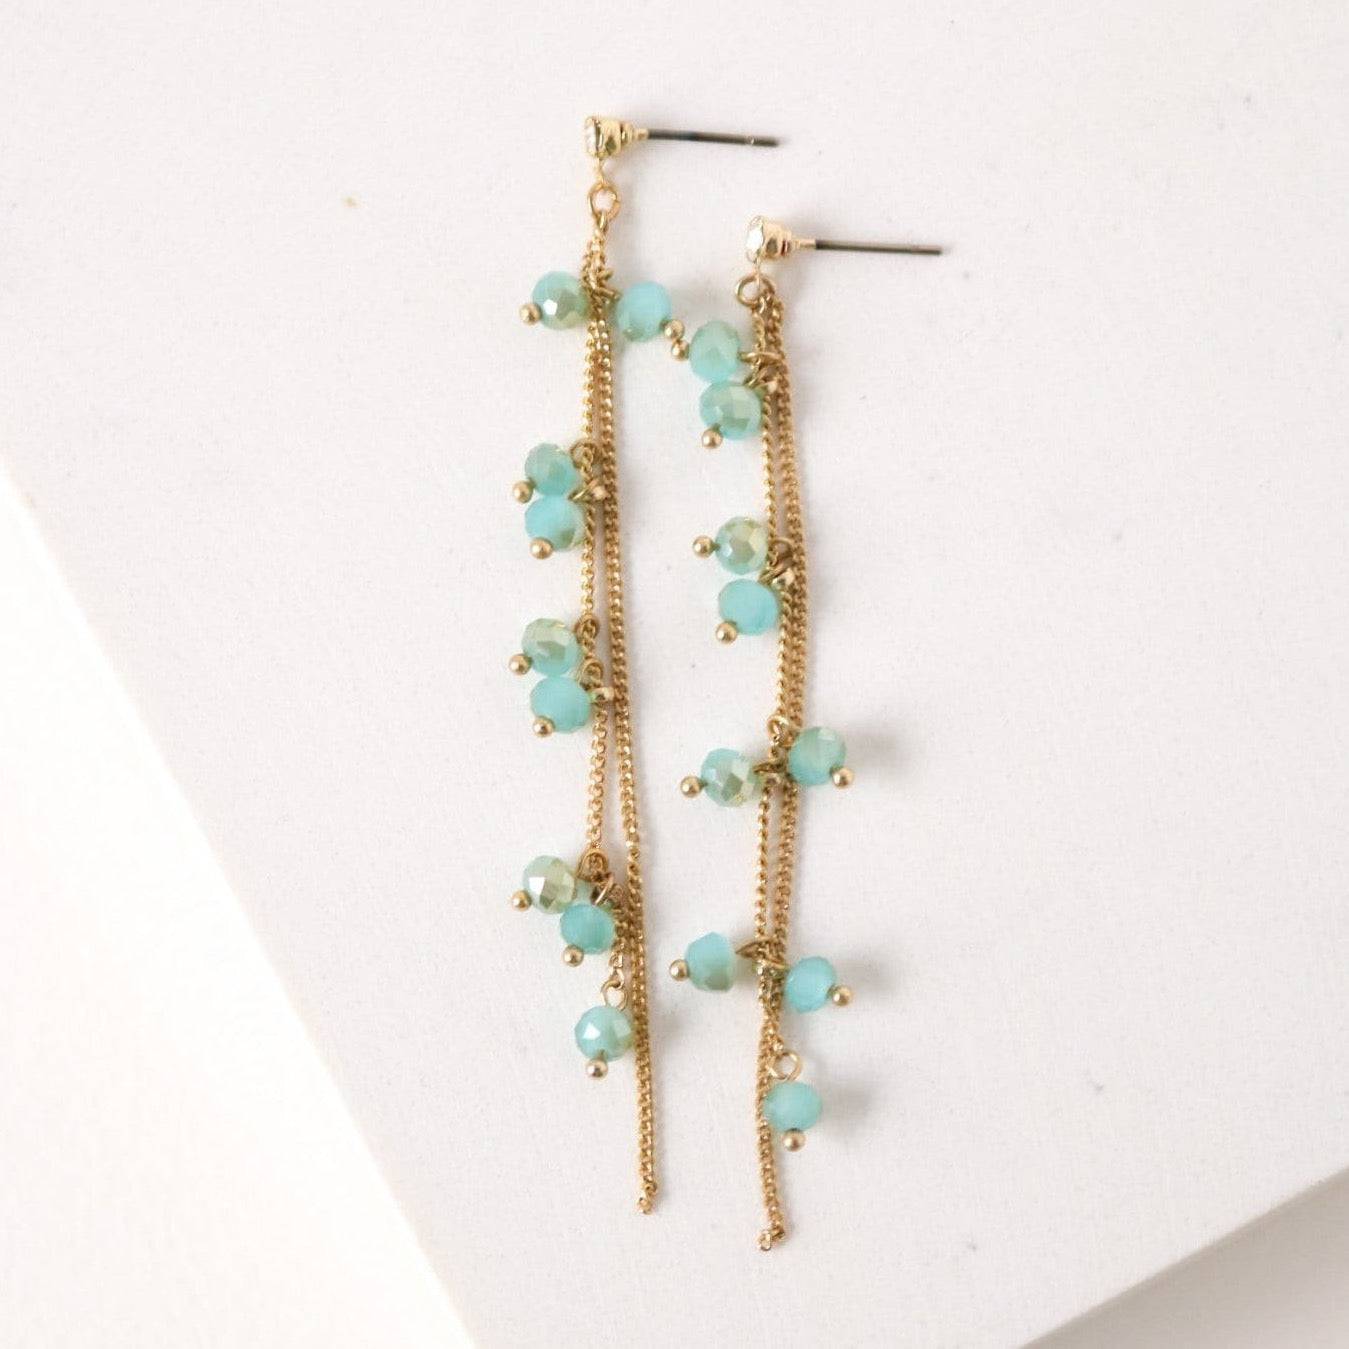 LOVER'S TEMPO - DOT CRYSTAL EARRINGS IN SEA